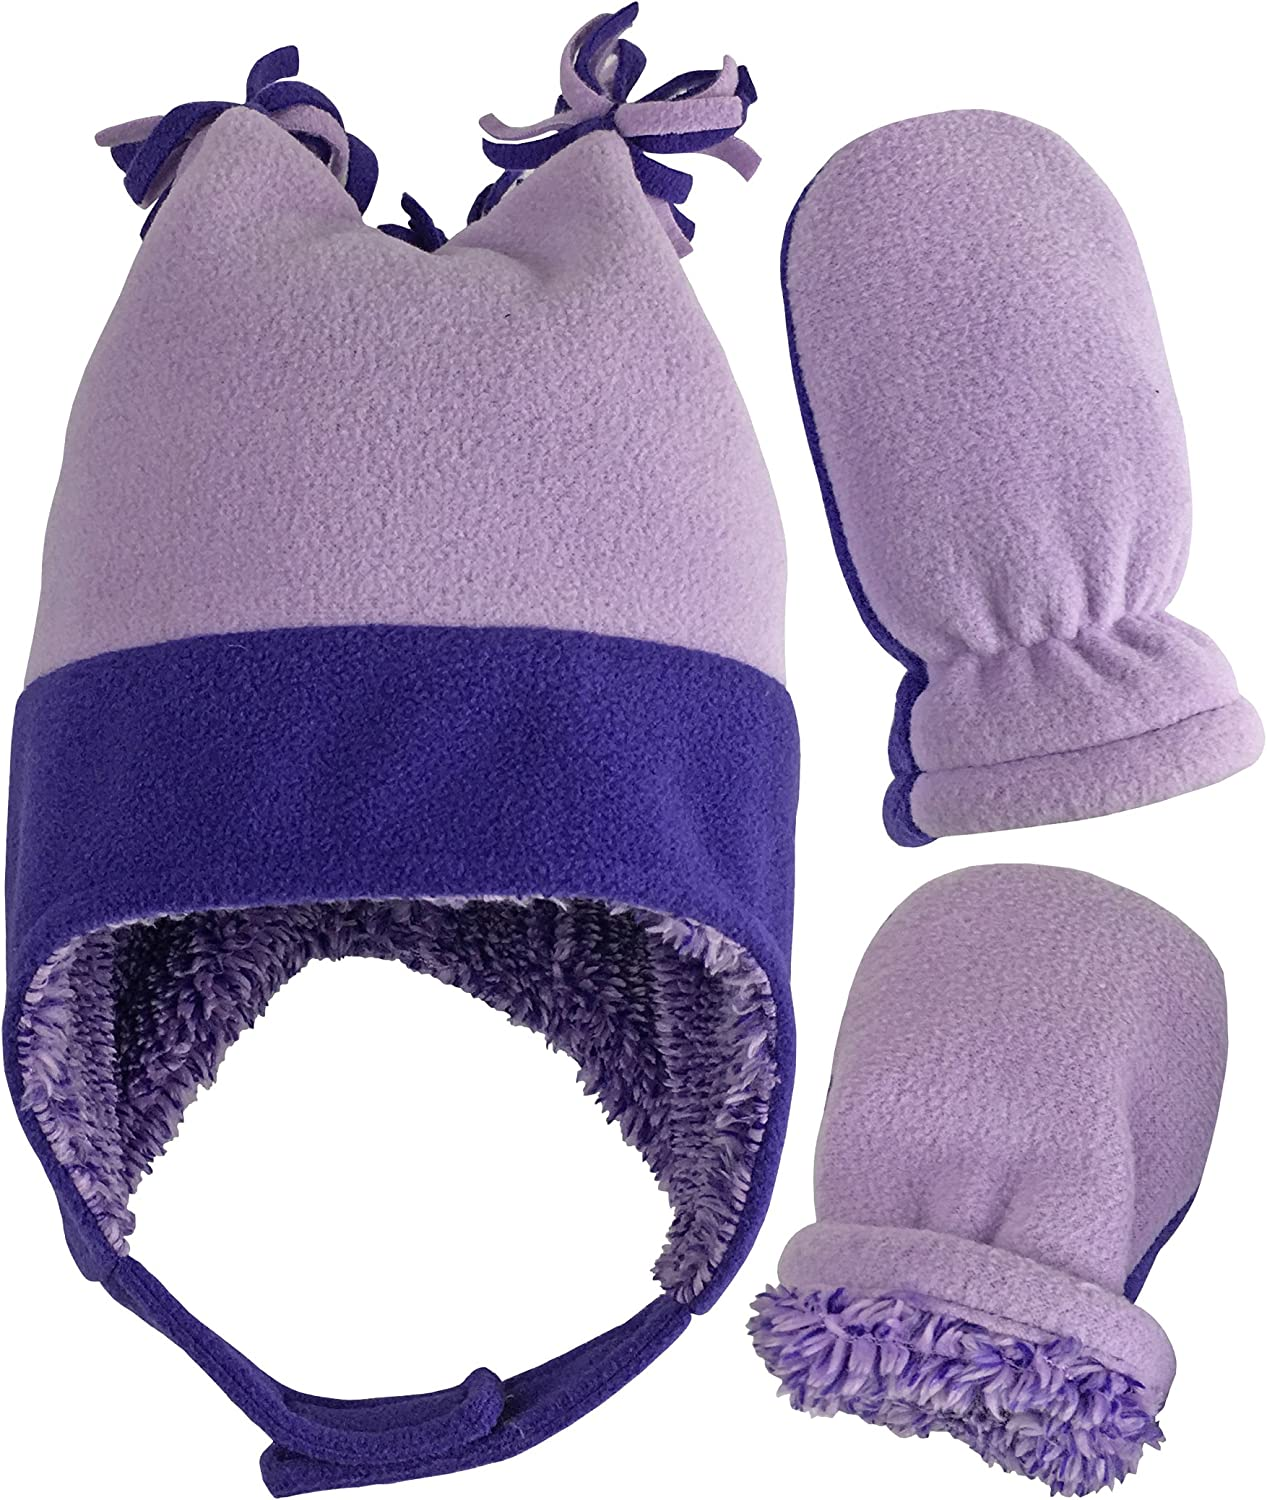 N'Ice Caps Little Girls and Baby Warm Sherpa Lined Fleece Snow Hat Mitten Set